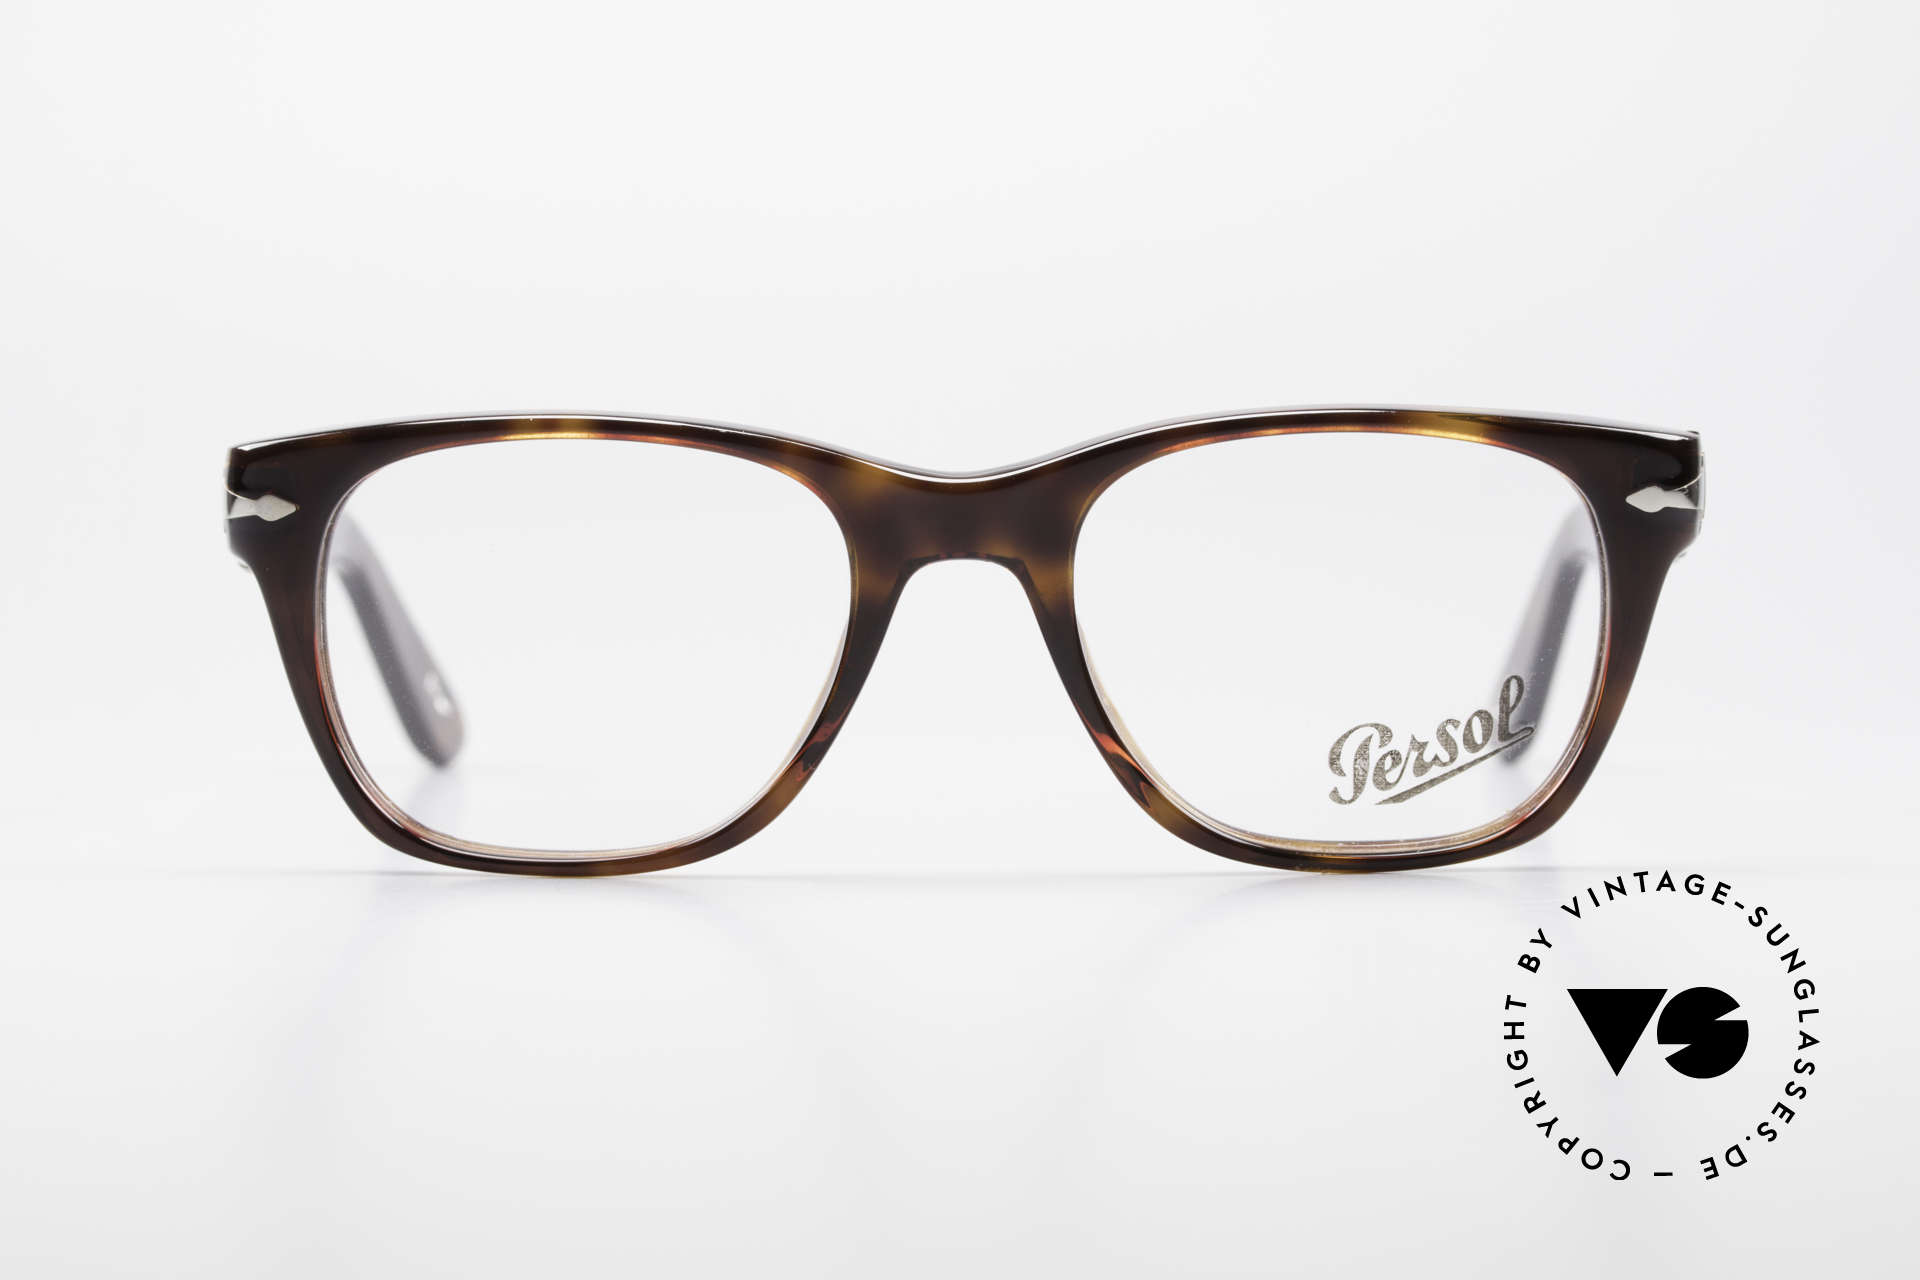 Persol 3039 Timeless Designer Eyeglasses, the current collection based on the old Persol RATTIS, Made for Men and Women